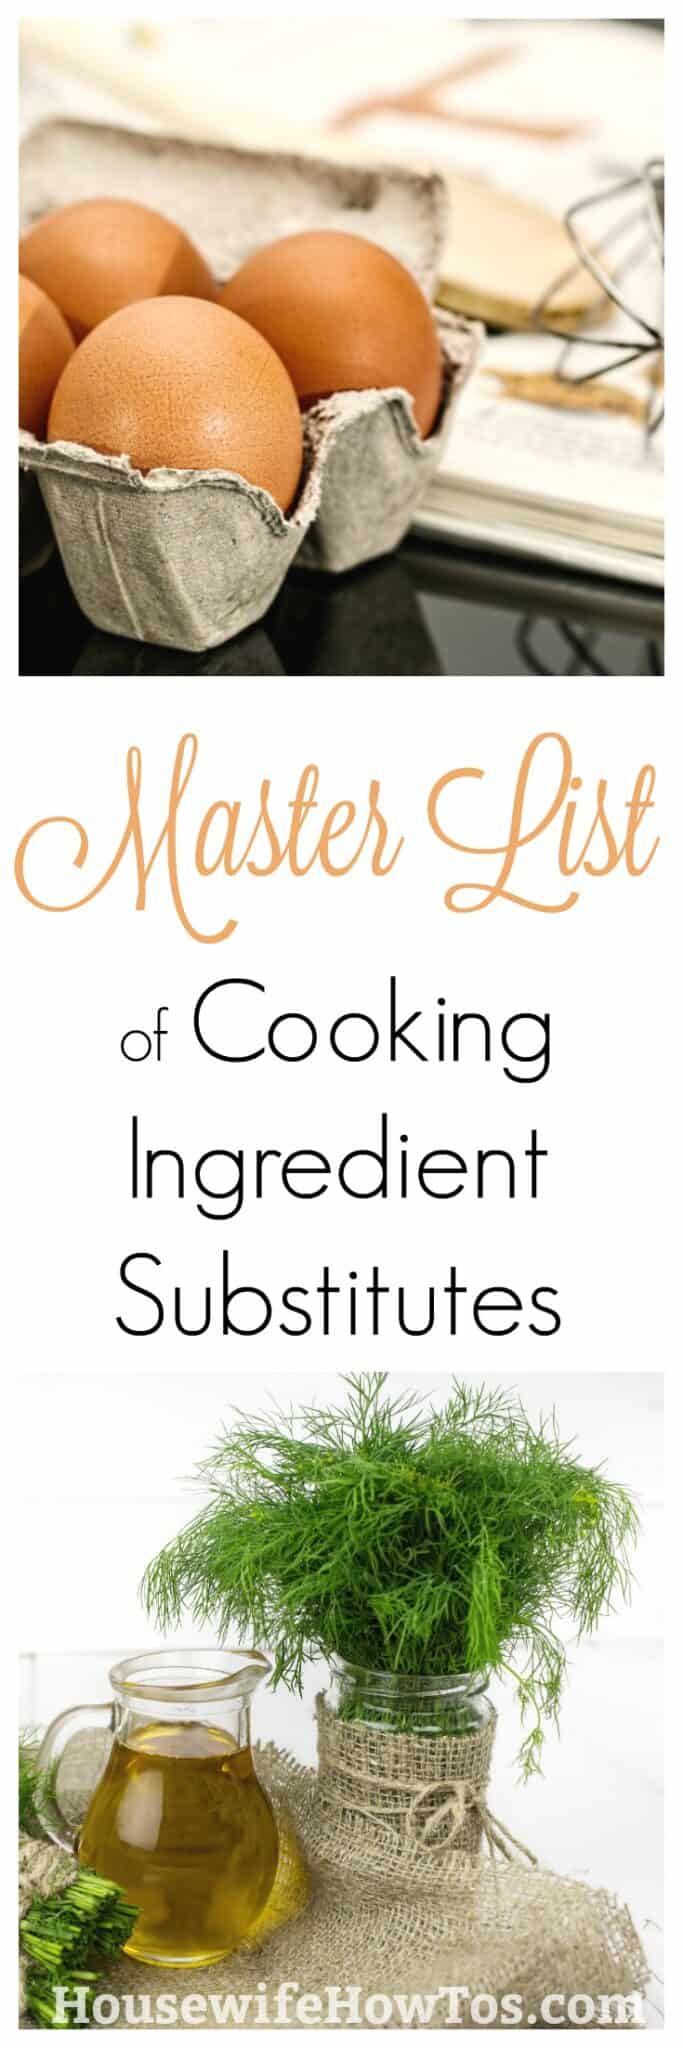 How to Substitute Cooking Ingredients - Skip a Trip to the Store with These Awesome Ingredient Swaps   #cookingtricks #cookinghacks #cookingskills #cooking